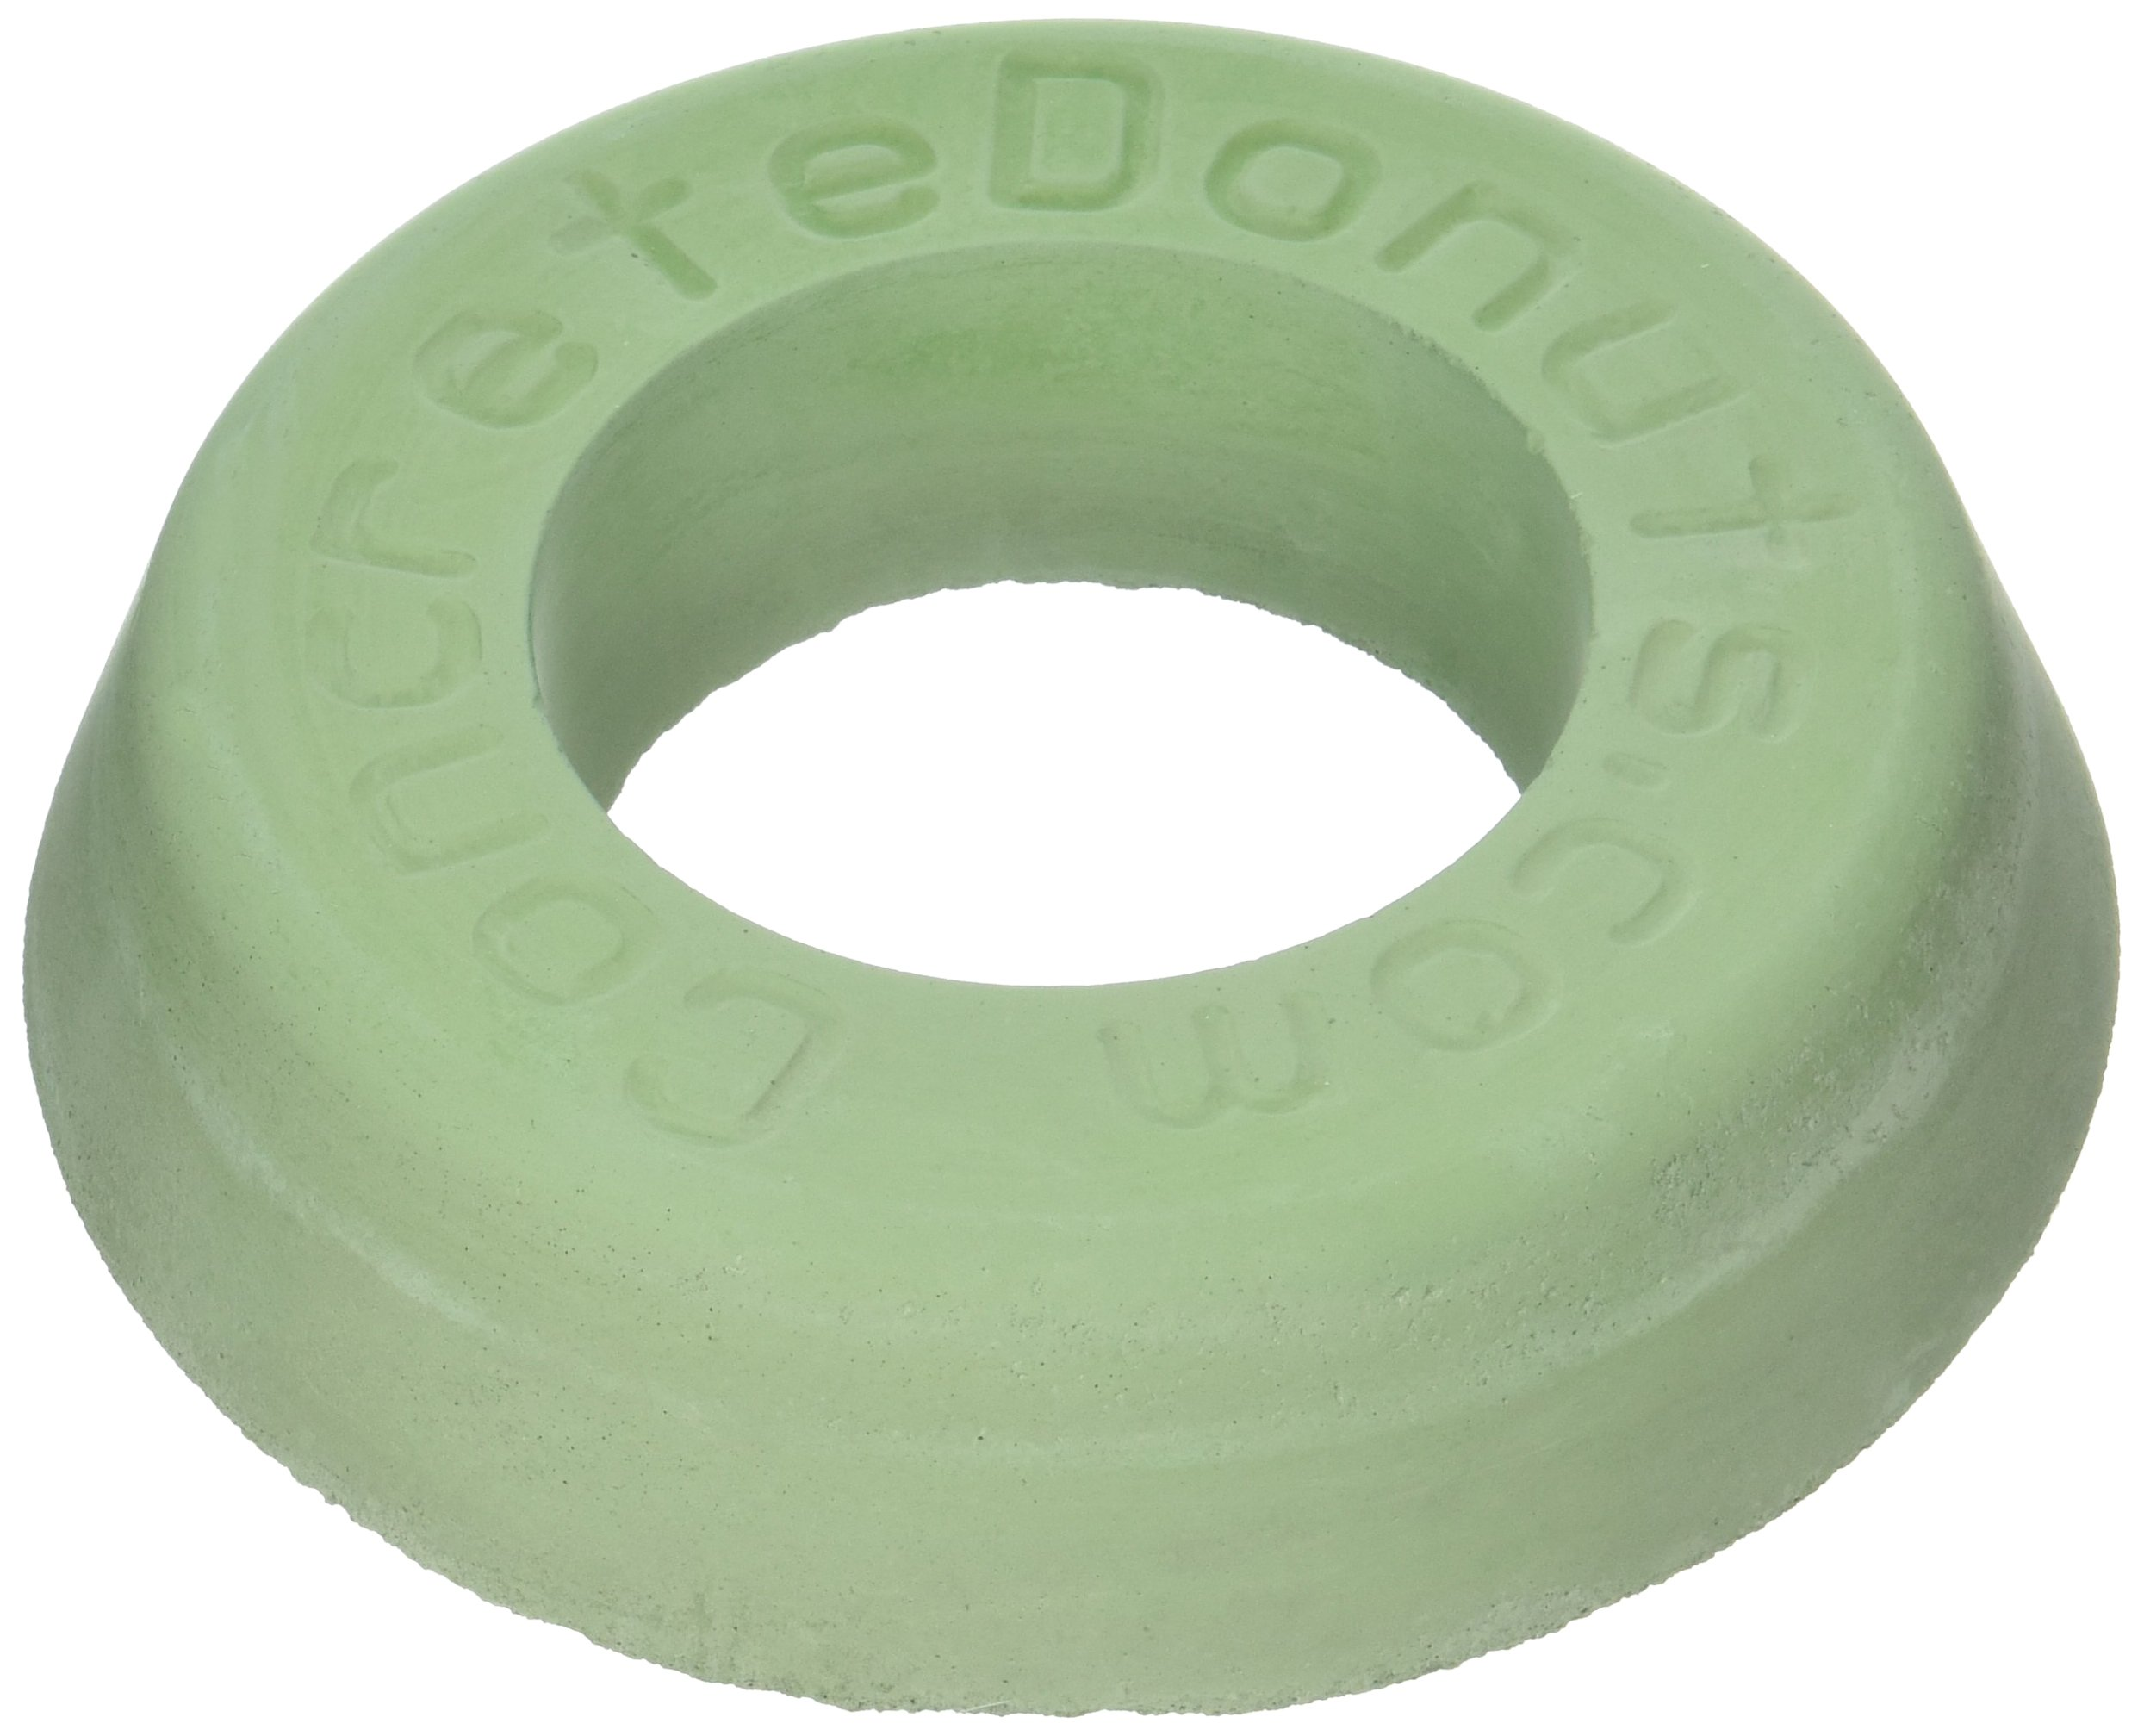 Concrete Donuts for a Rotary Head Full, Large Full, Green